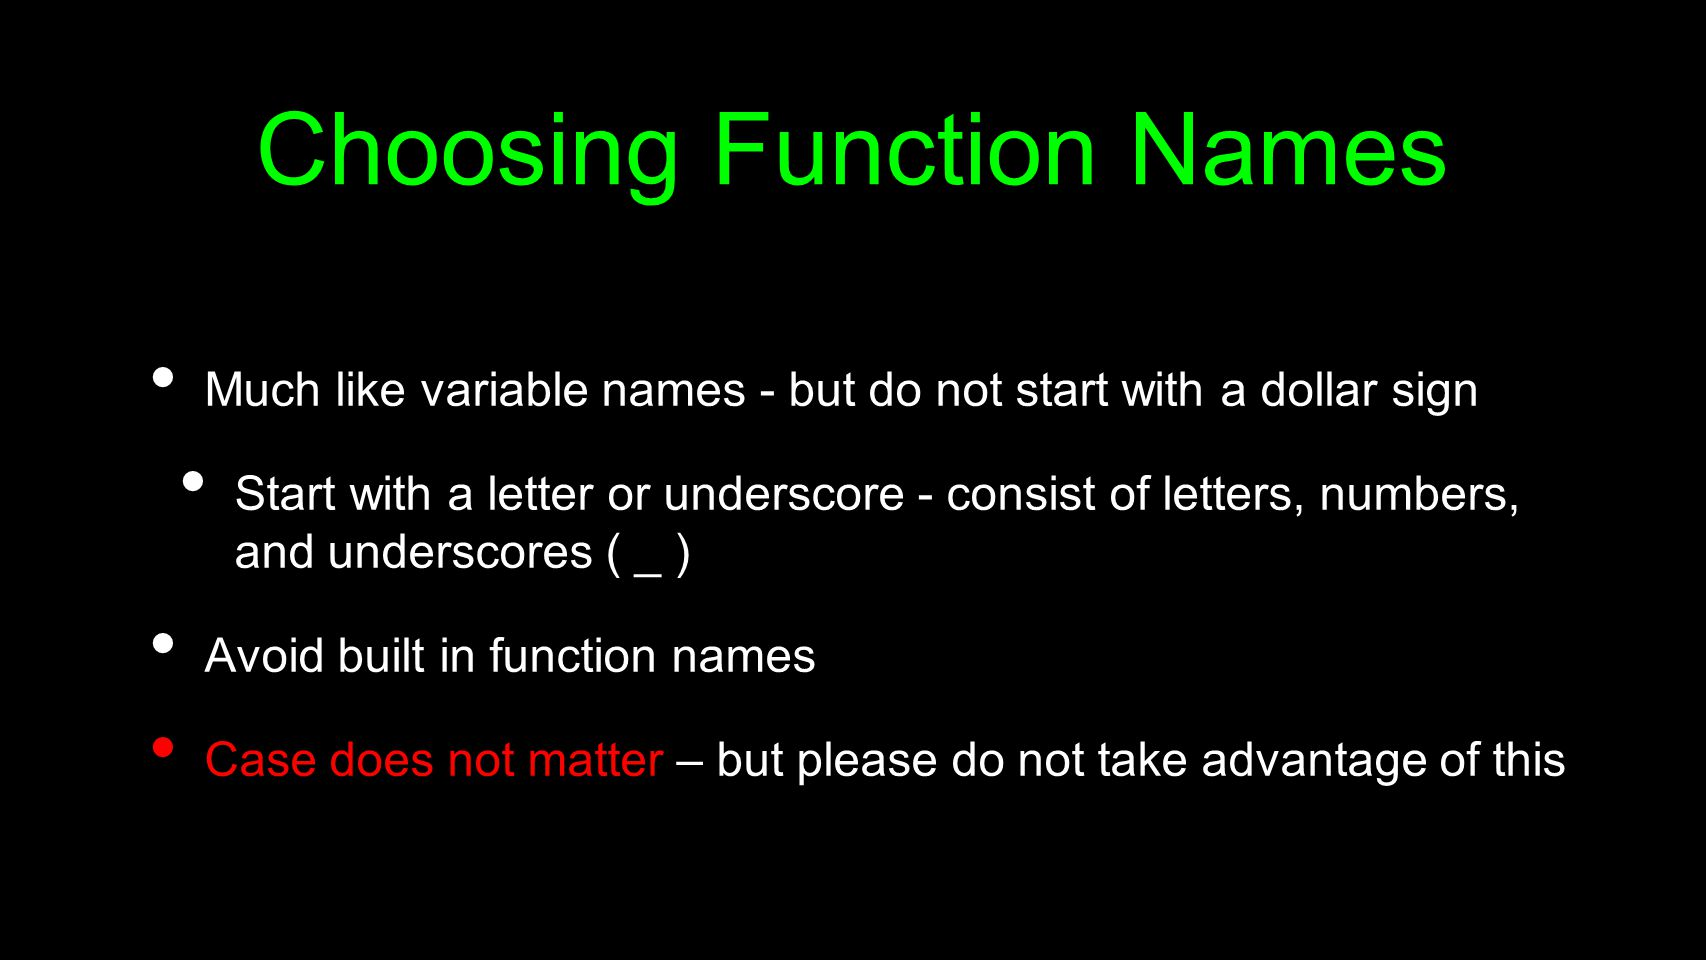 Choosing Function Names